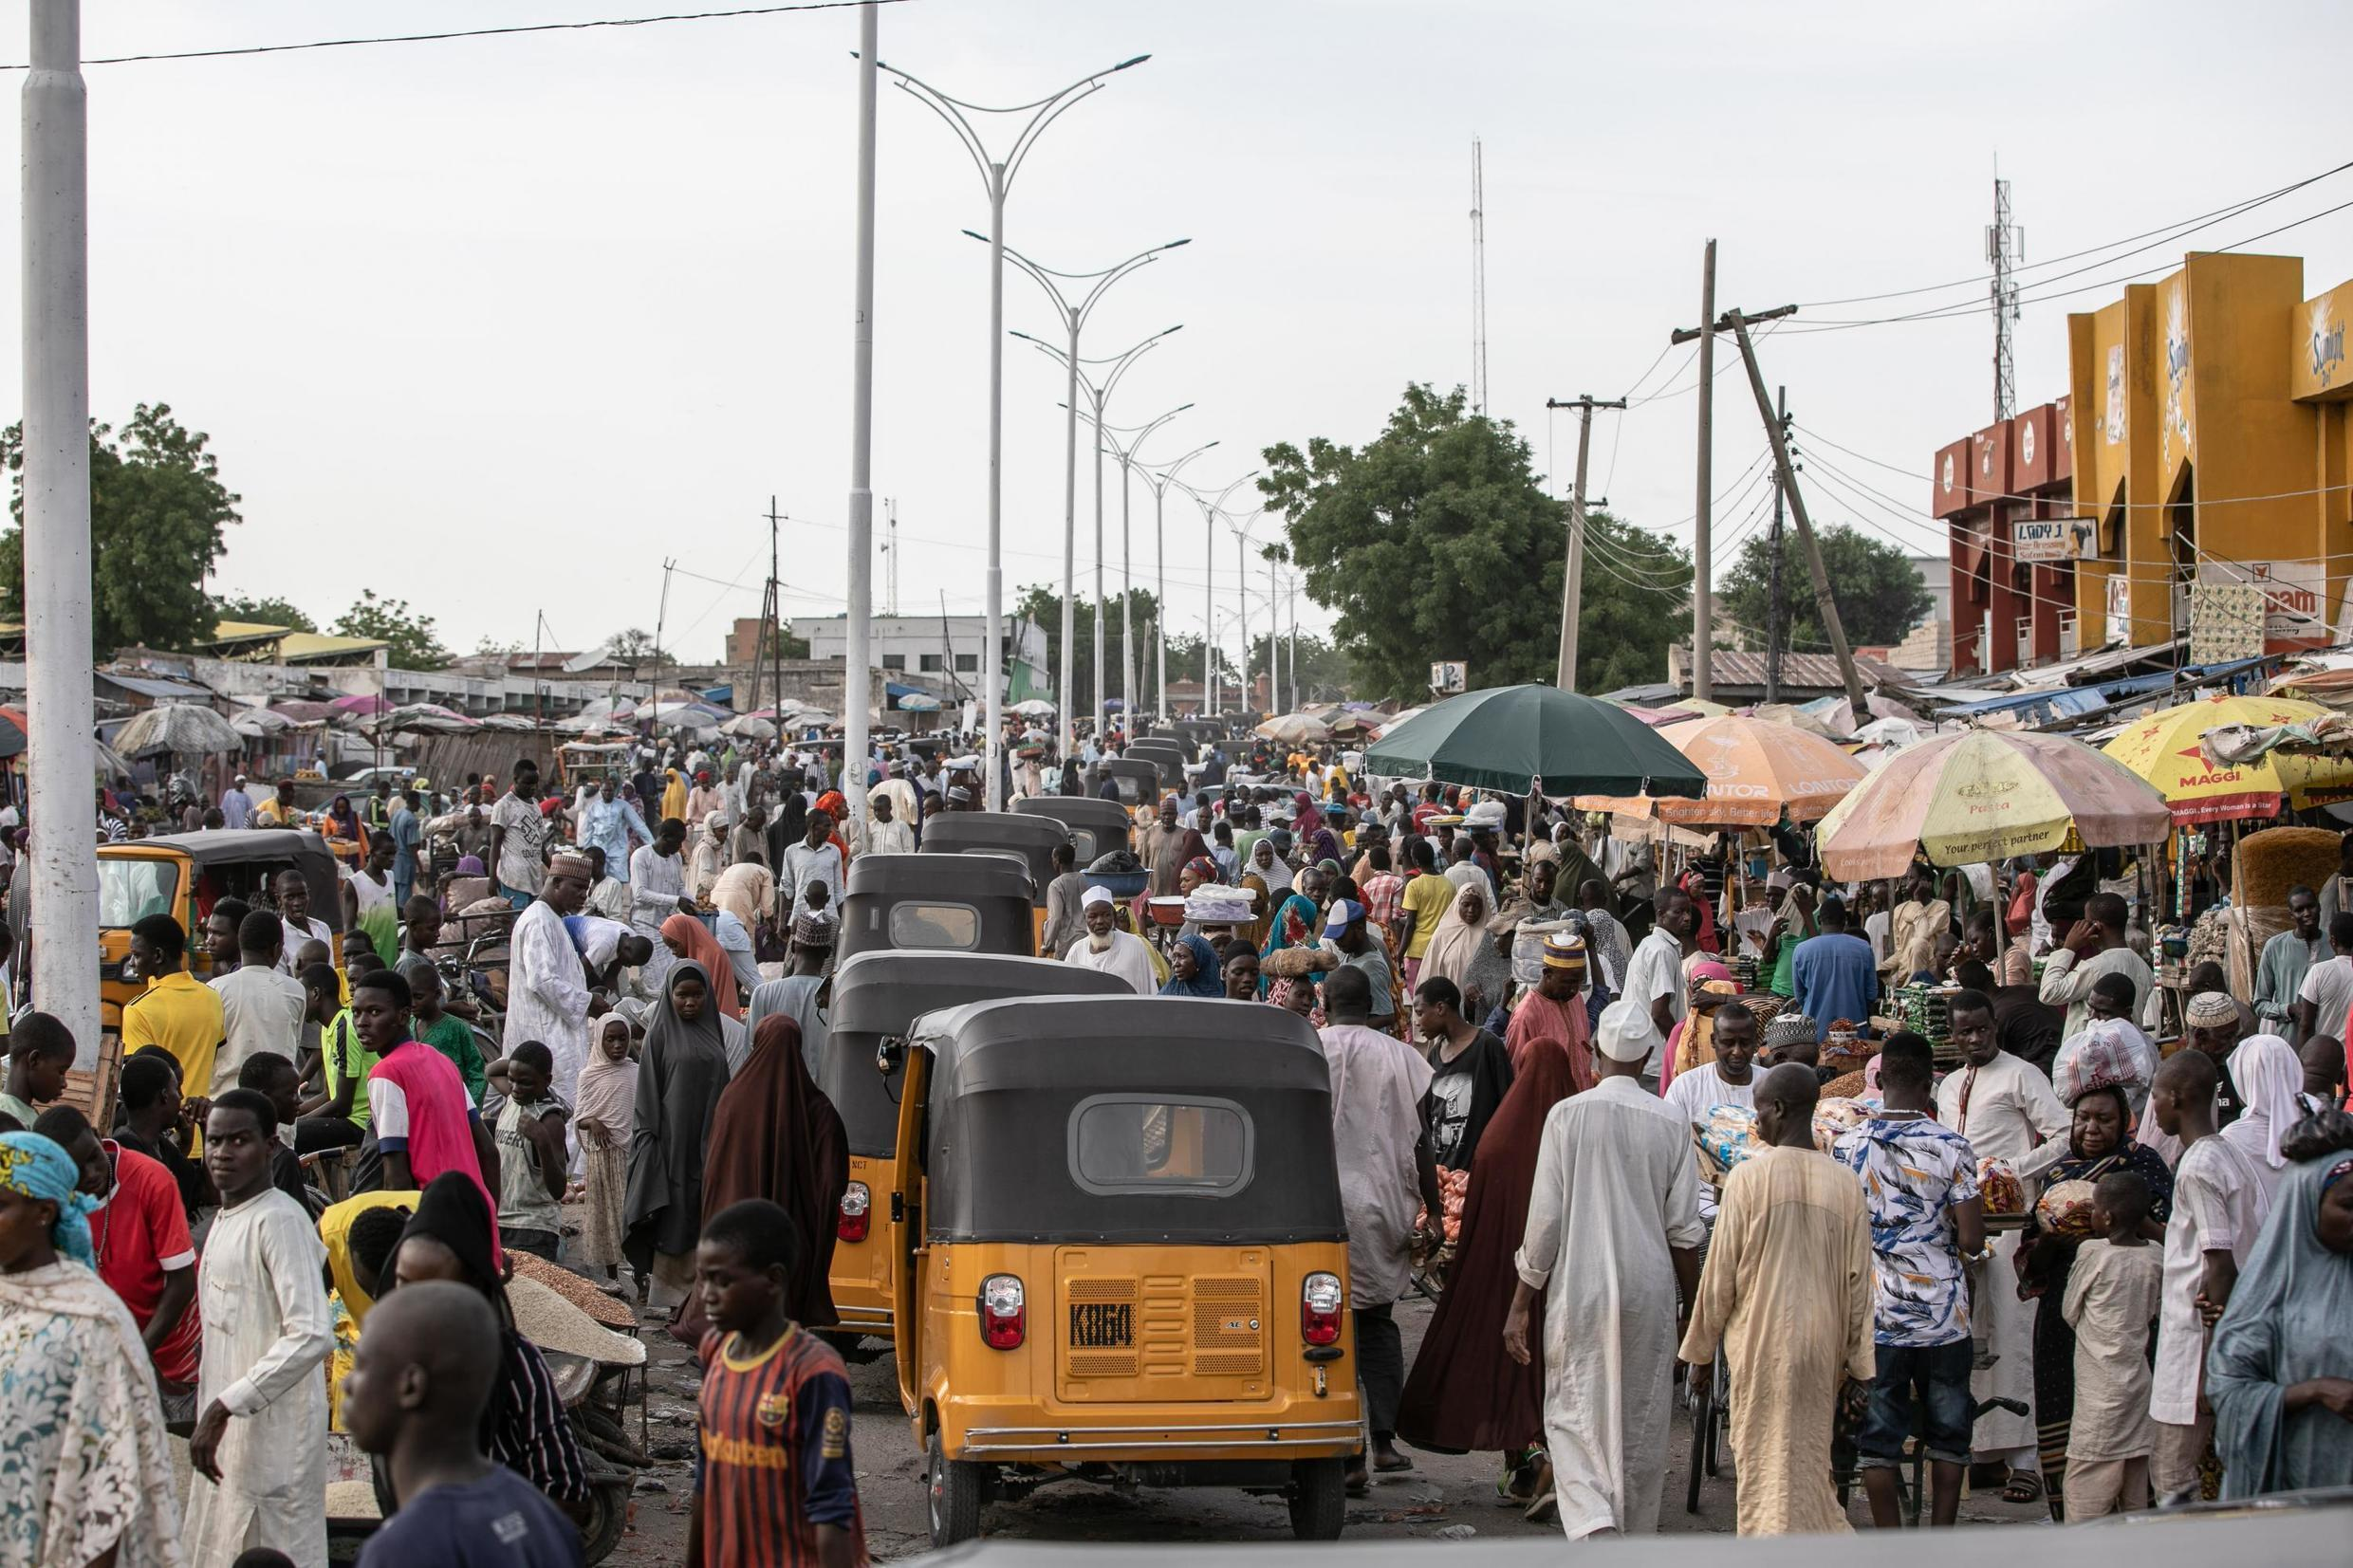 The hustle and bustle of Monday Market, one of the largest markets in Maiduguri which has endured several attacks by suicide bombers sent by Boko Haram but continues to thrive despite constant threat of attacks. 26th July, 2019.